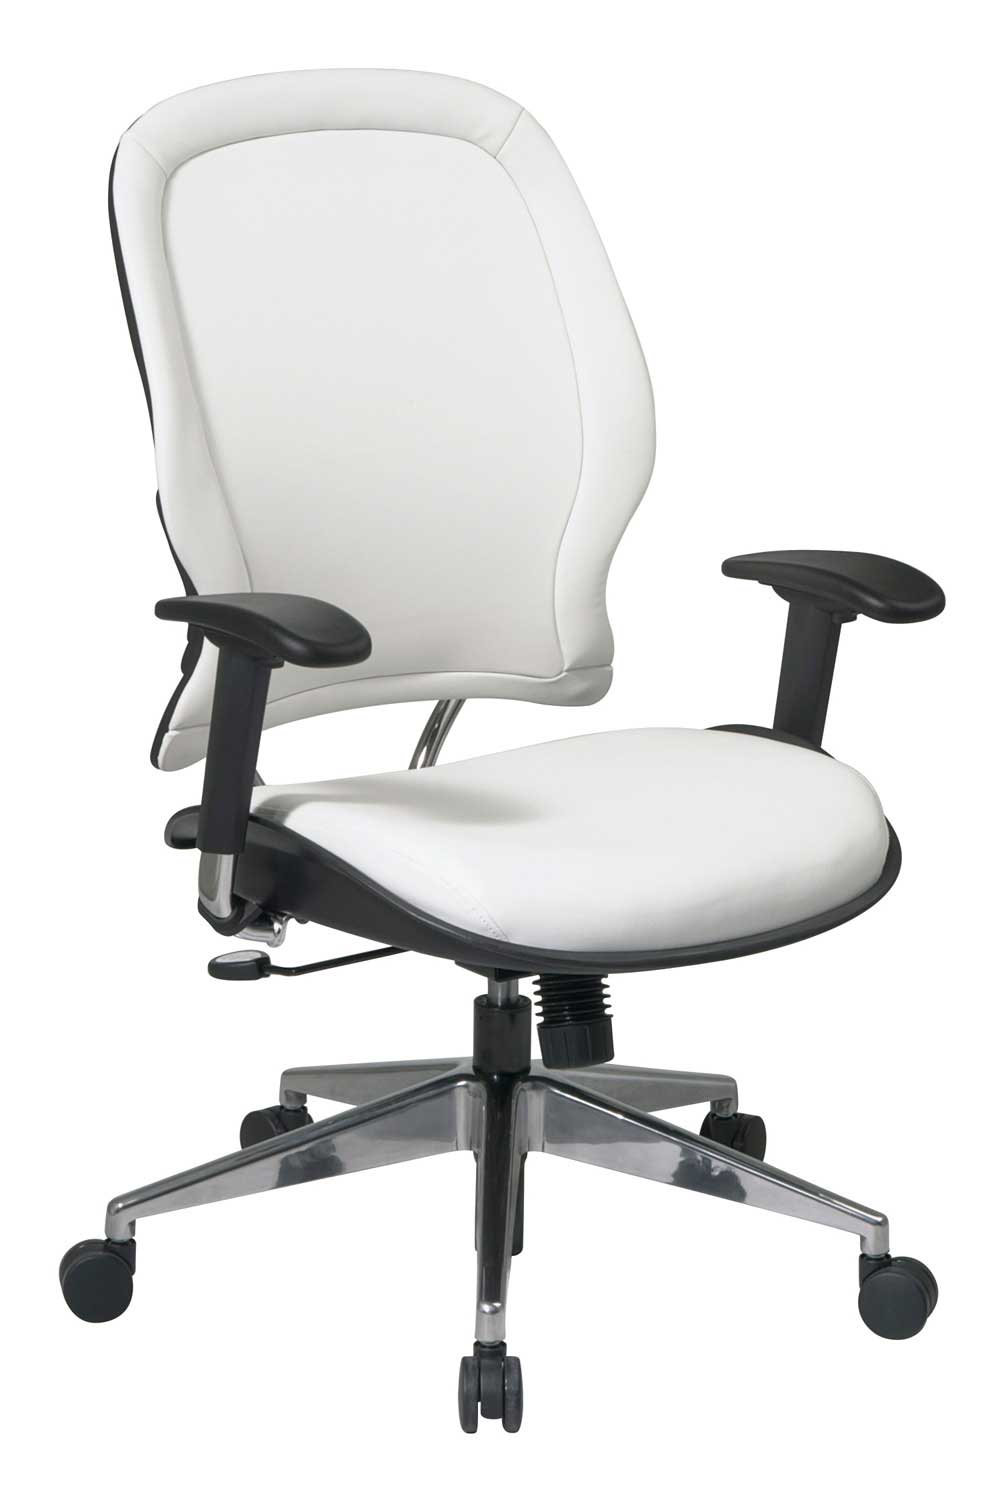 Vinyl Office Chairs As Leather Chair Alternative